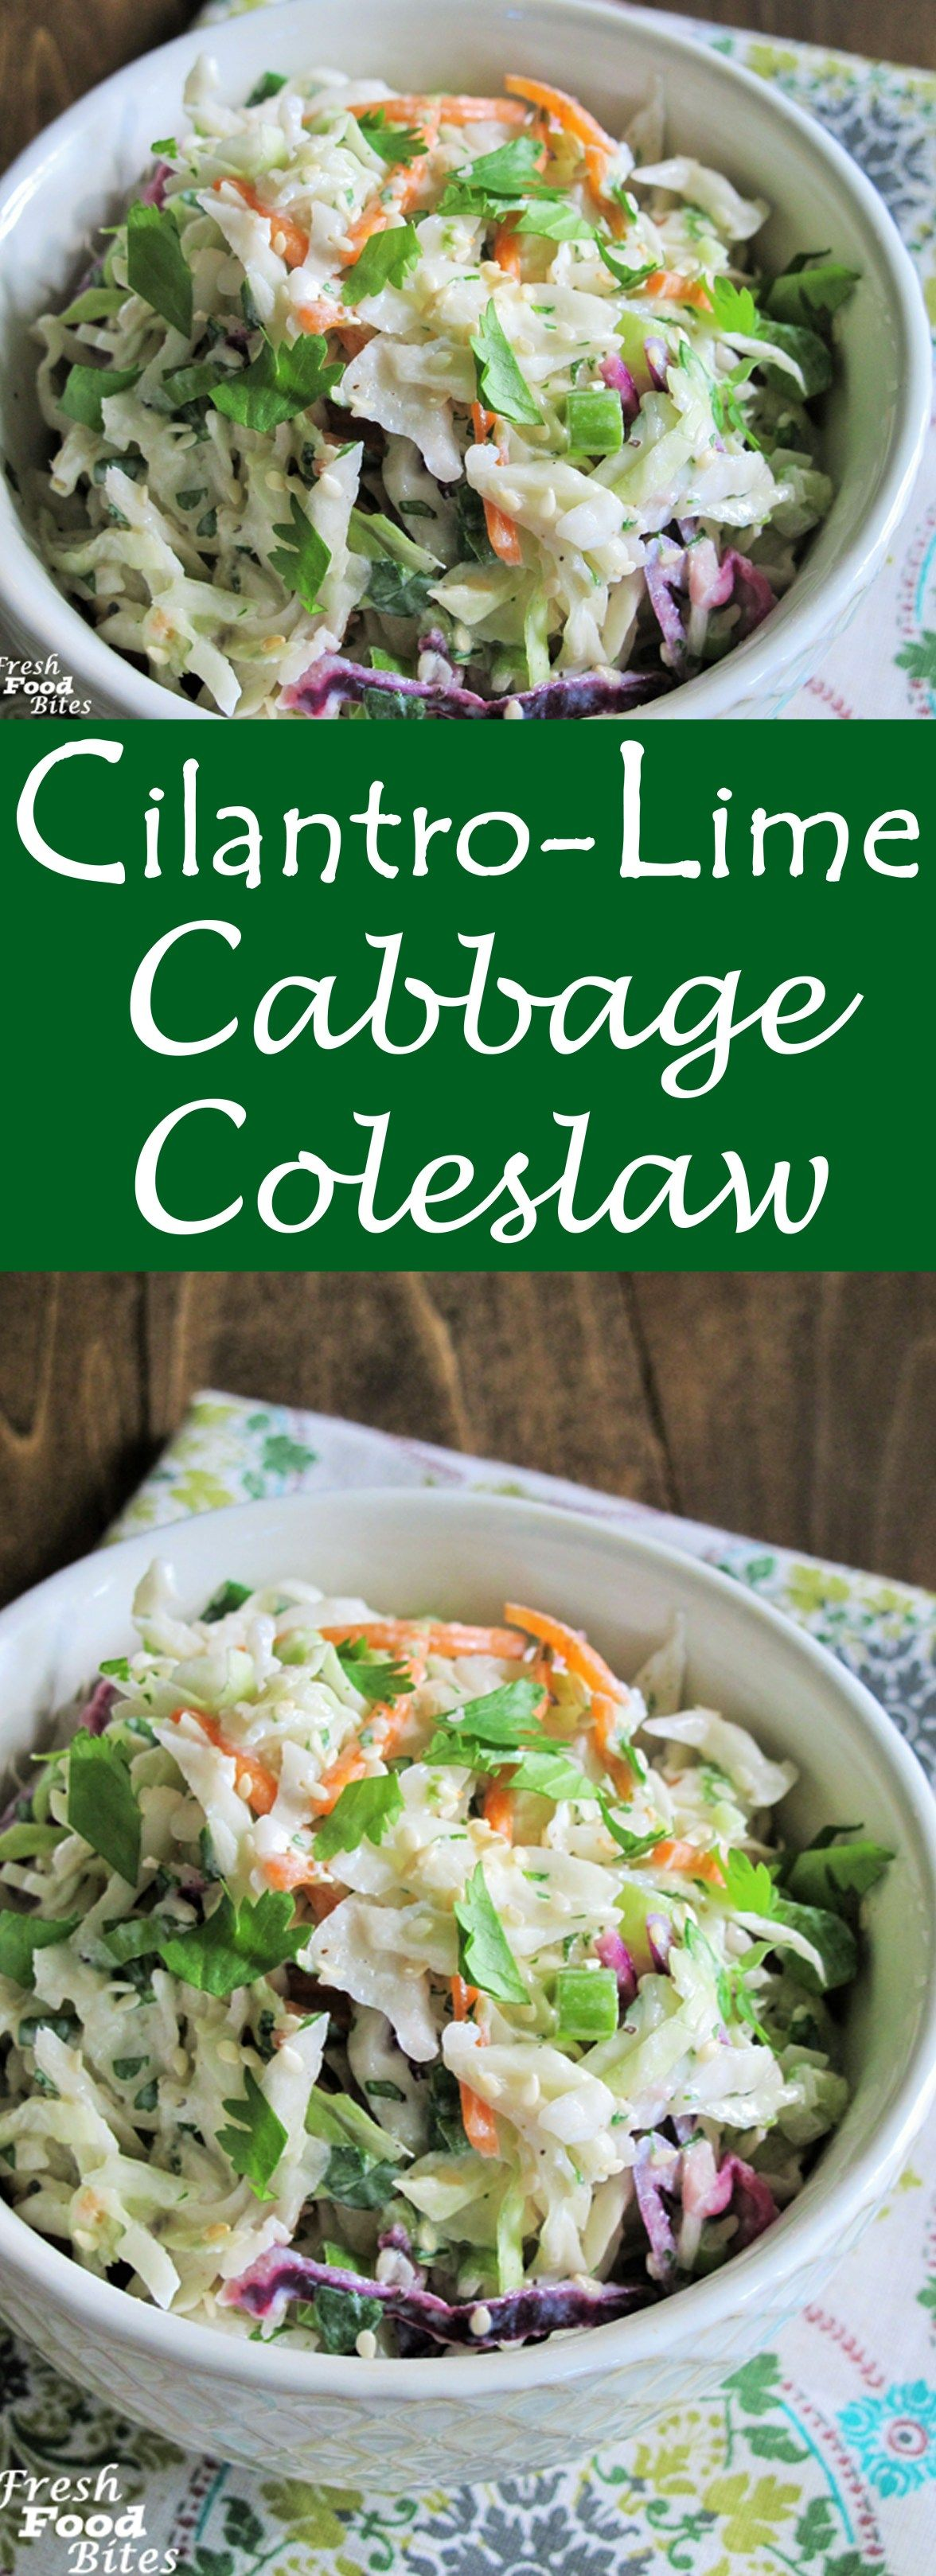 Bright, tangy fresh flavor abounds in this crunchy Cilantro-Lime Cabbage Coleslaw for a nice change-up from traditional creamy coleslaw. It's healthy, loaded with veggies, and pairs well with most any recipe you want to serve it with. From fish tacos, to grilled chicken, to shredded smoked pork sandwiches, this coleslaw fits in well for a truly fresh summer salad that is super low in calories. #cilantrolimeslaw